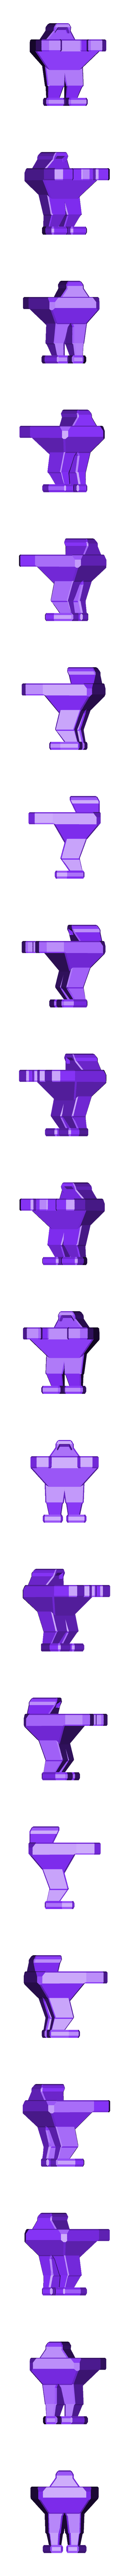 PLP-ROBOT.STL Download free STL file PLP ROBOT HEART • 3D printing model, PLP